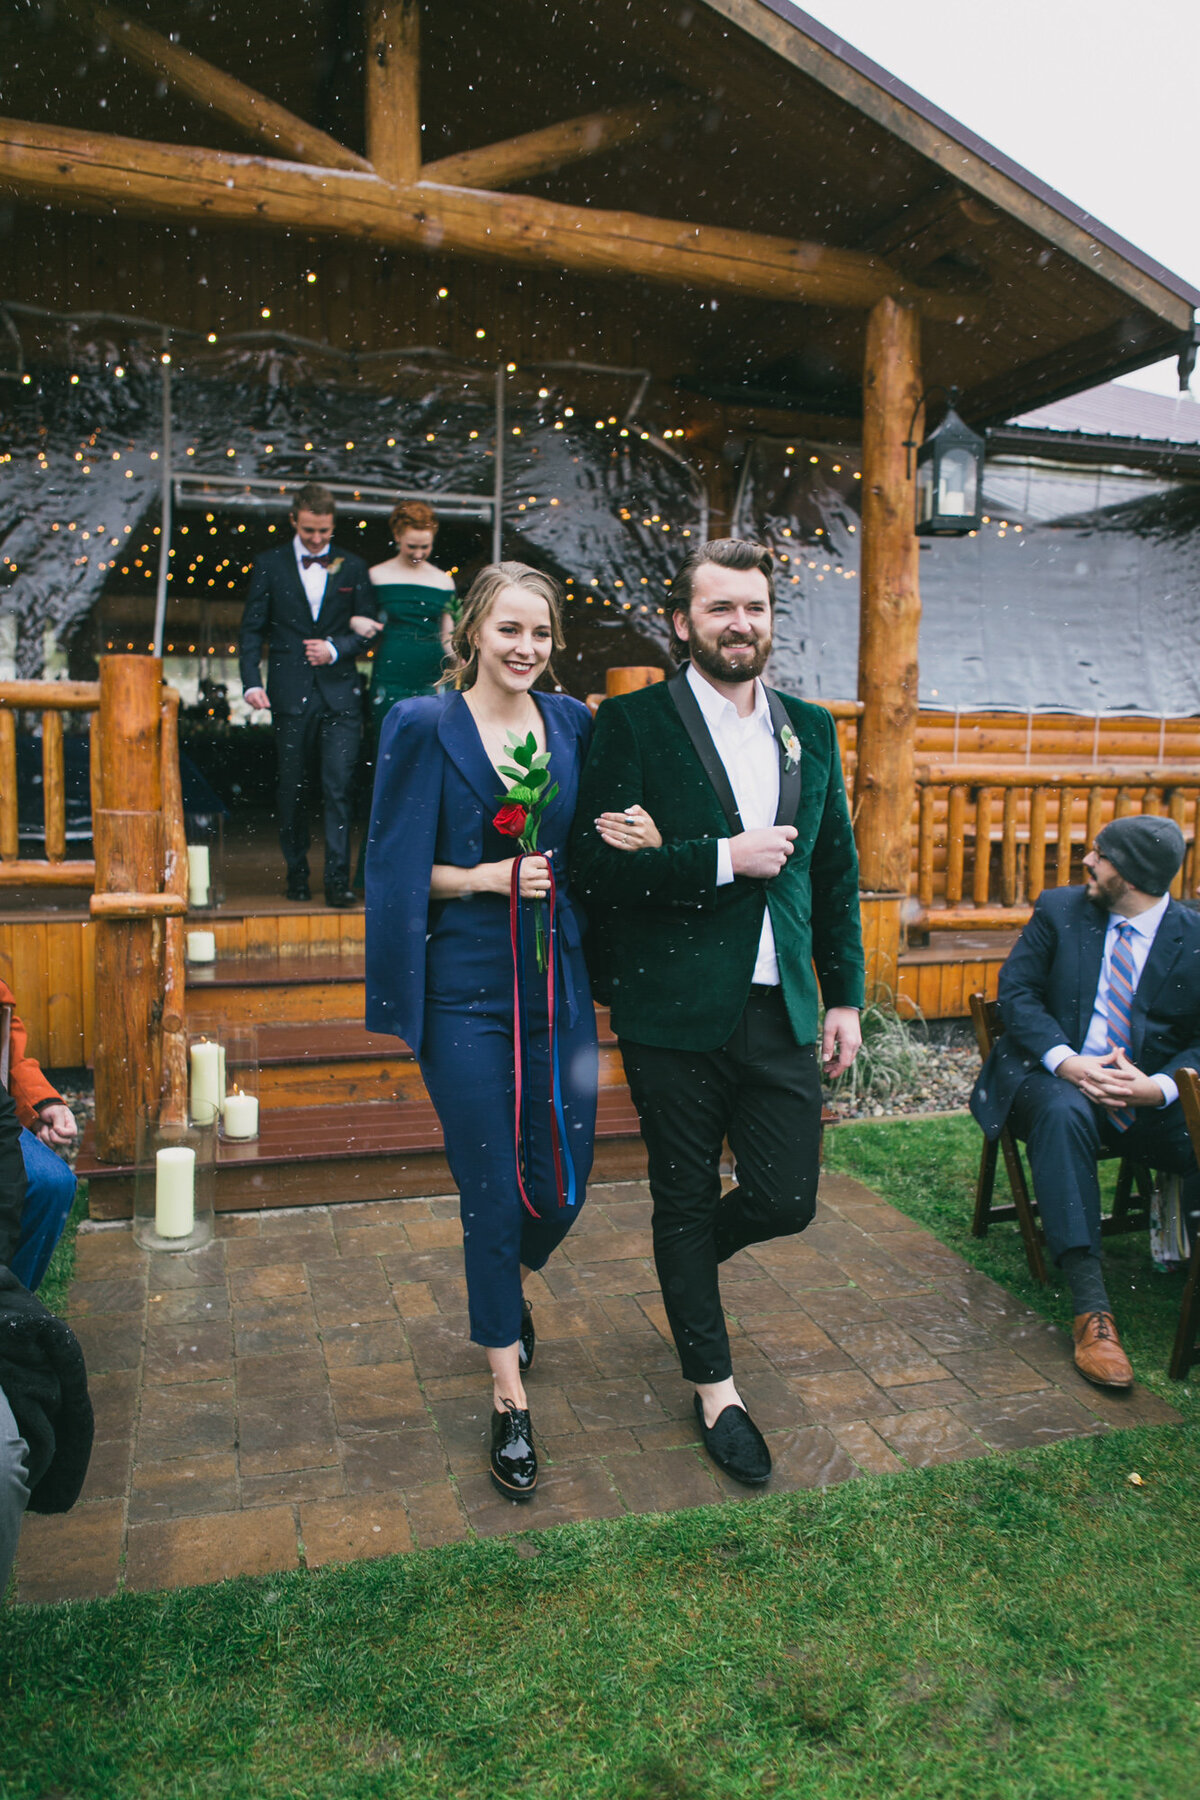 Jennifer_Mooney_Photography_Abbey_Stephen_Fall_Winter_Glacier_Park_Elopement-133